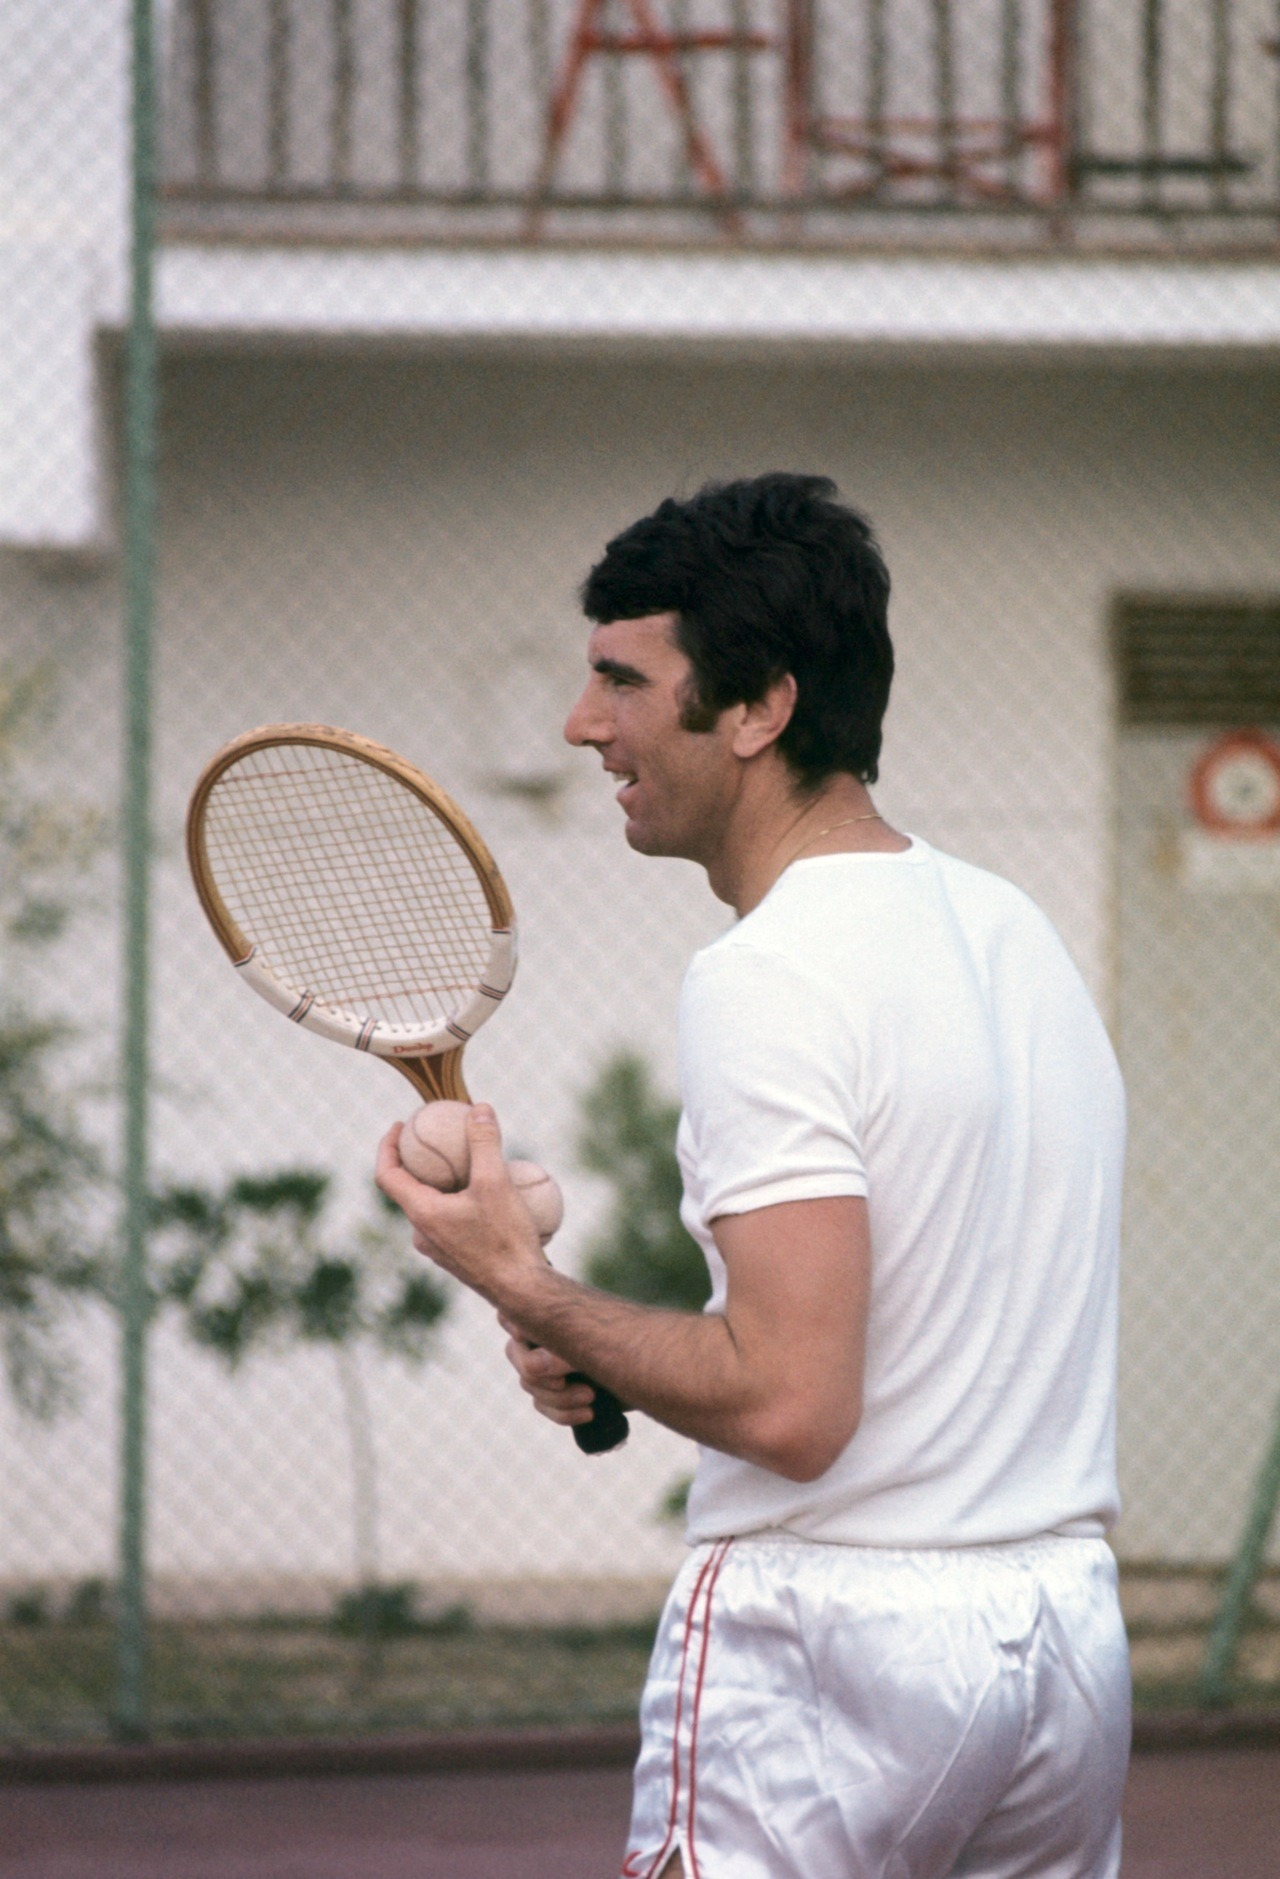 Dino Zoff playing tennis with Sepp Maier, 1977.